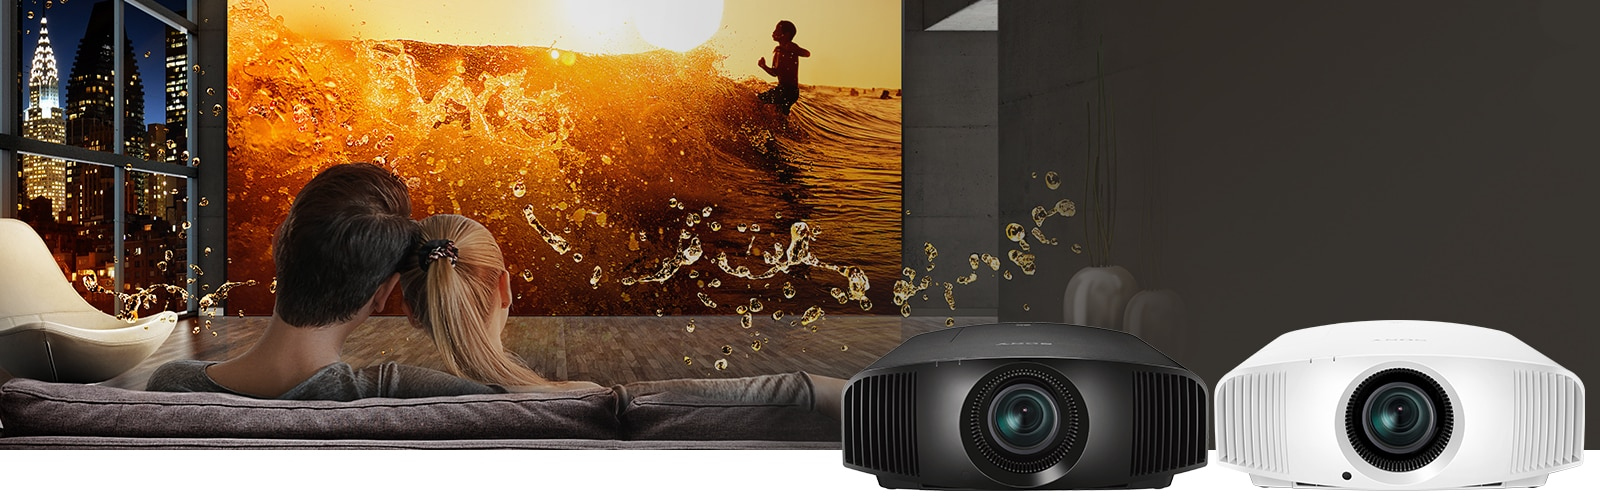 Sony 4K: Movie theatre quality in your own home